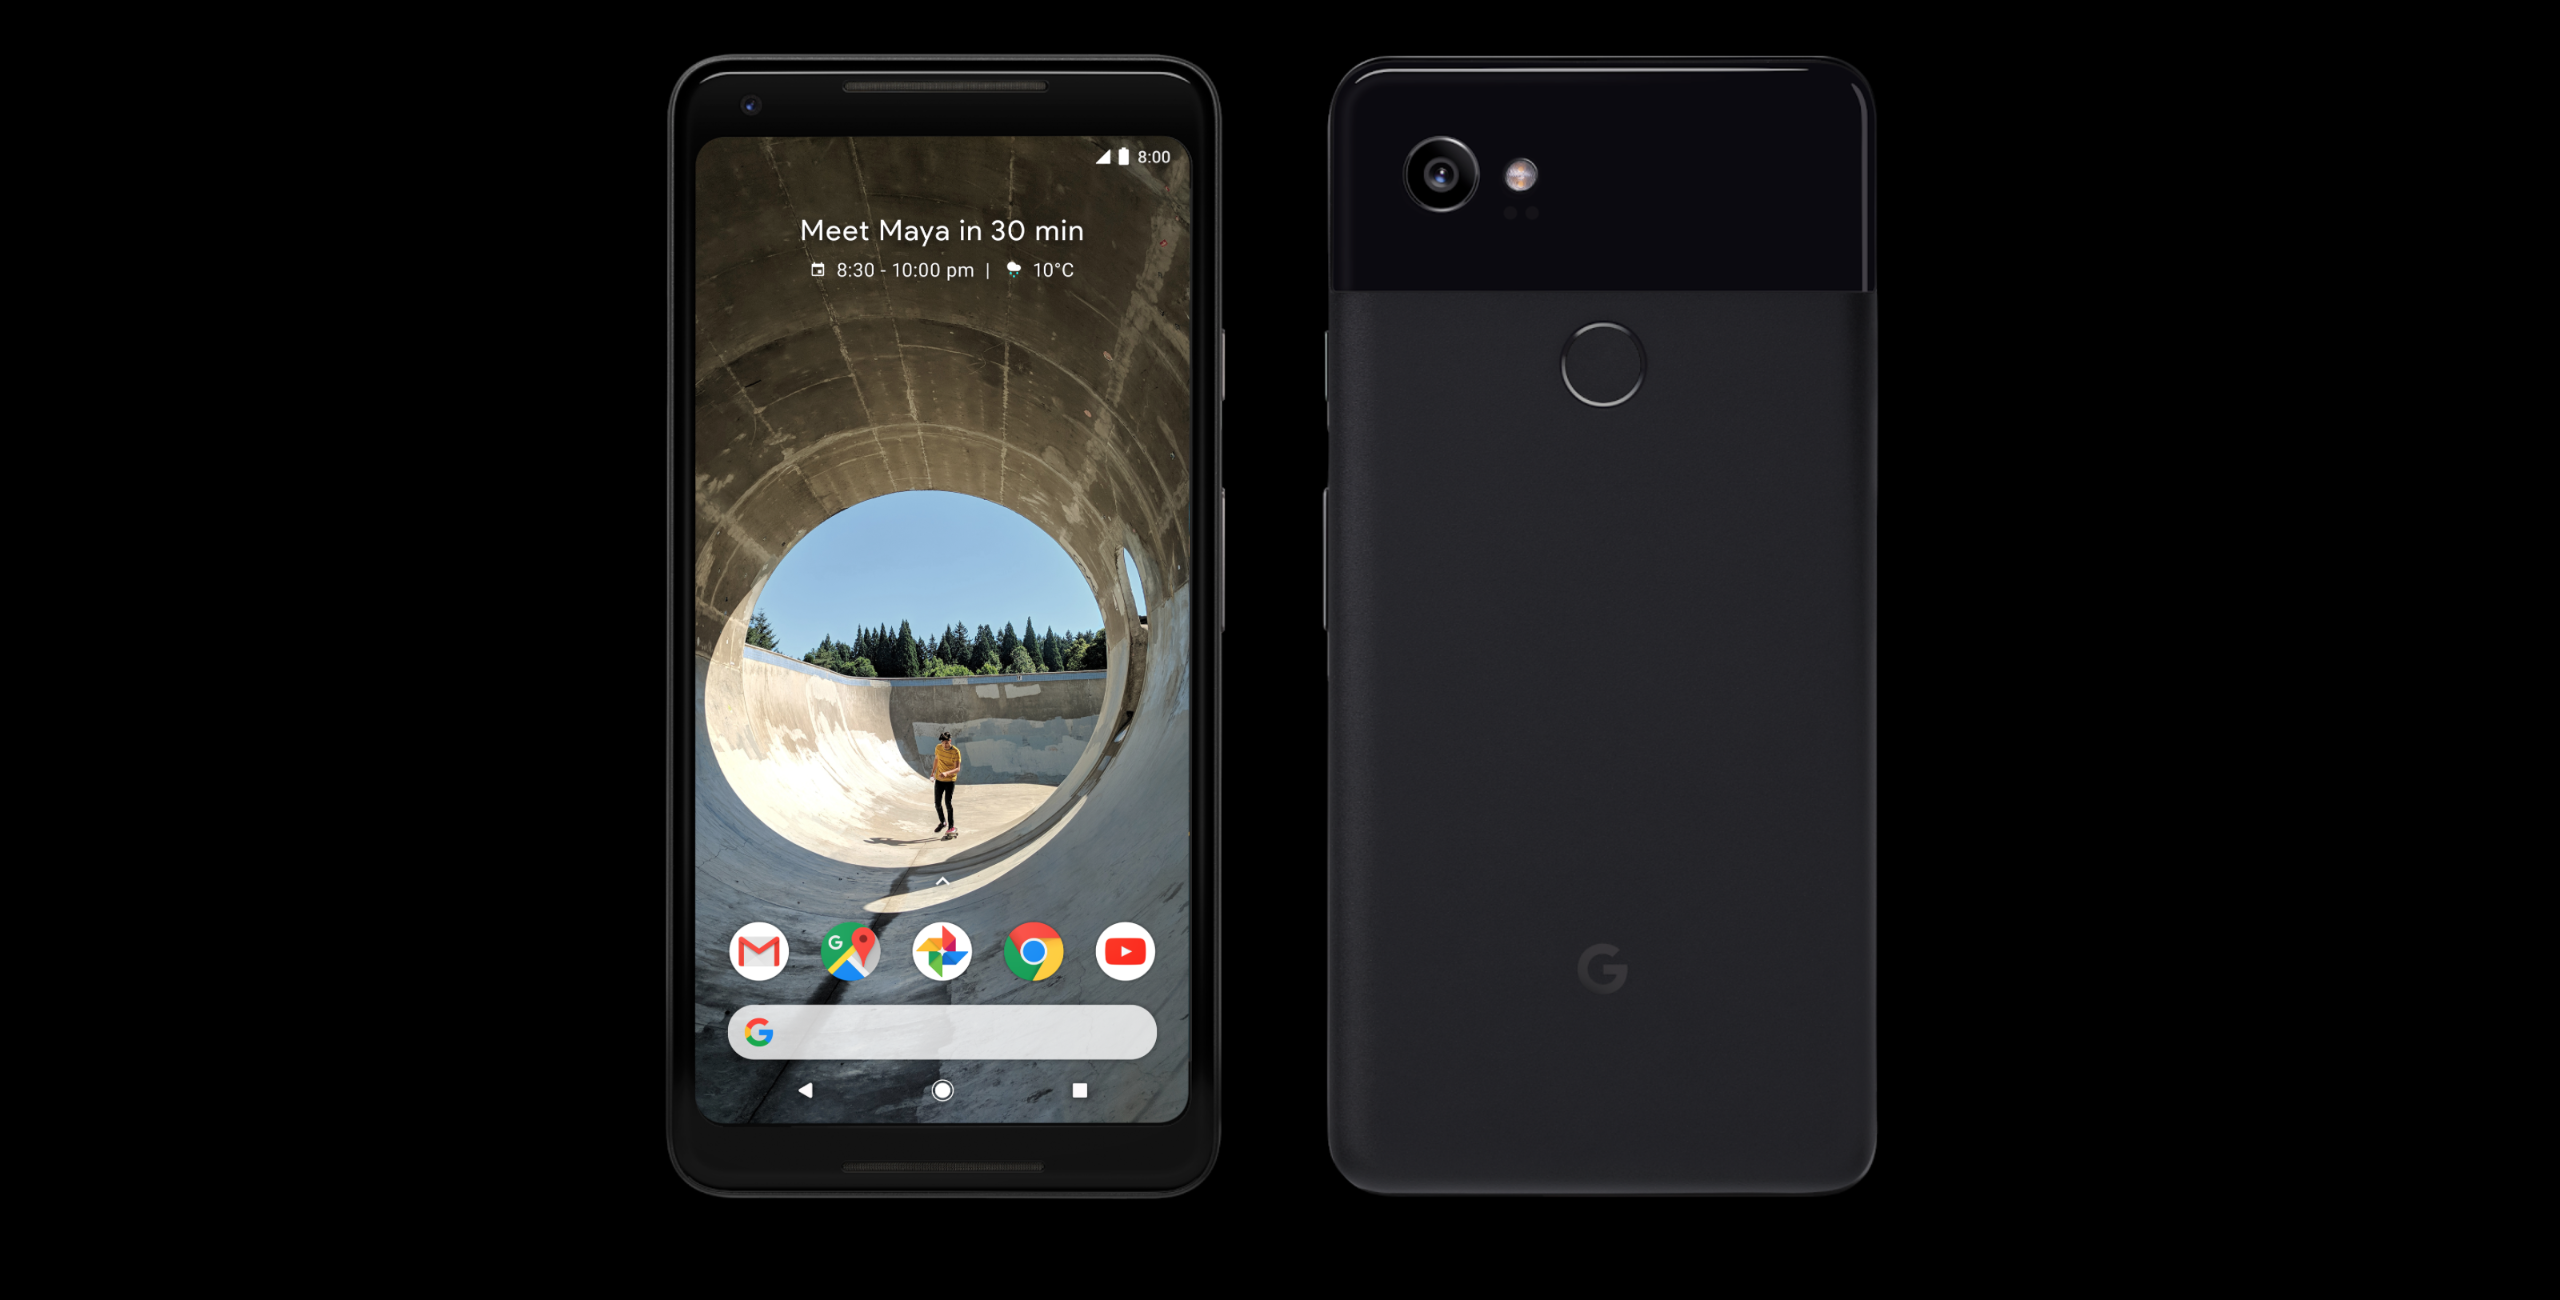 Google has been getting way too much stick for the Pixel 2 XL's